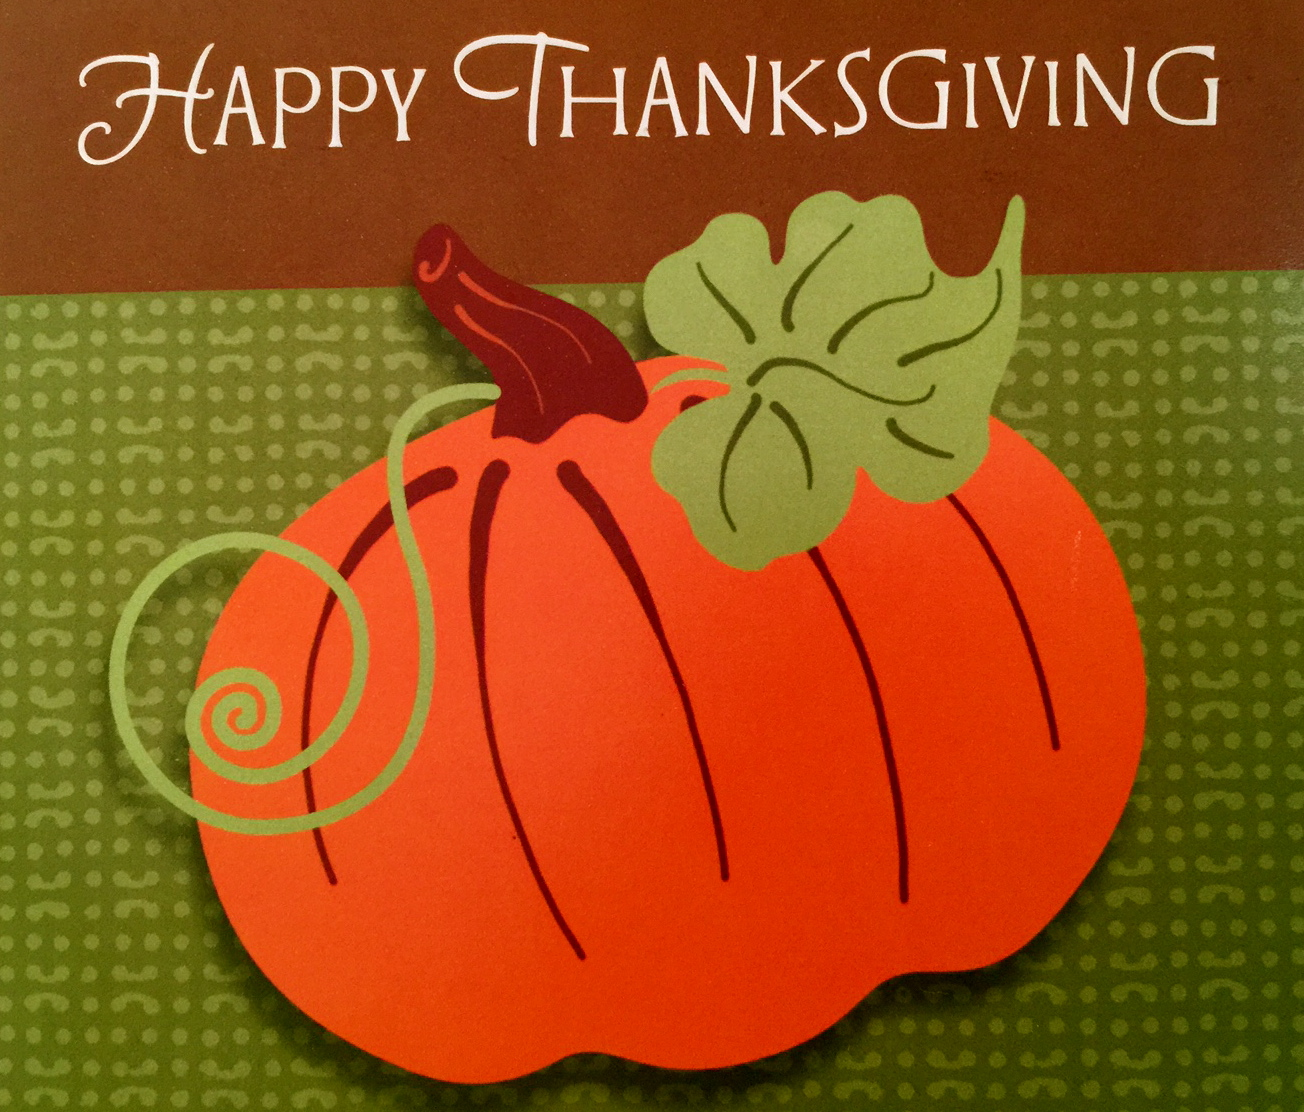 Happy Thanksgiving From SCV Bail Bonds